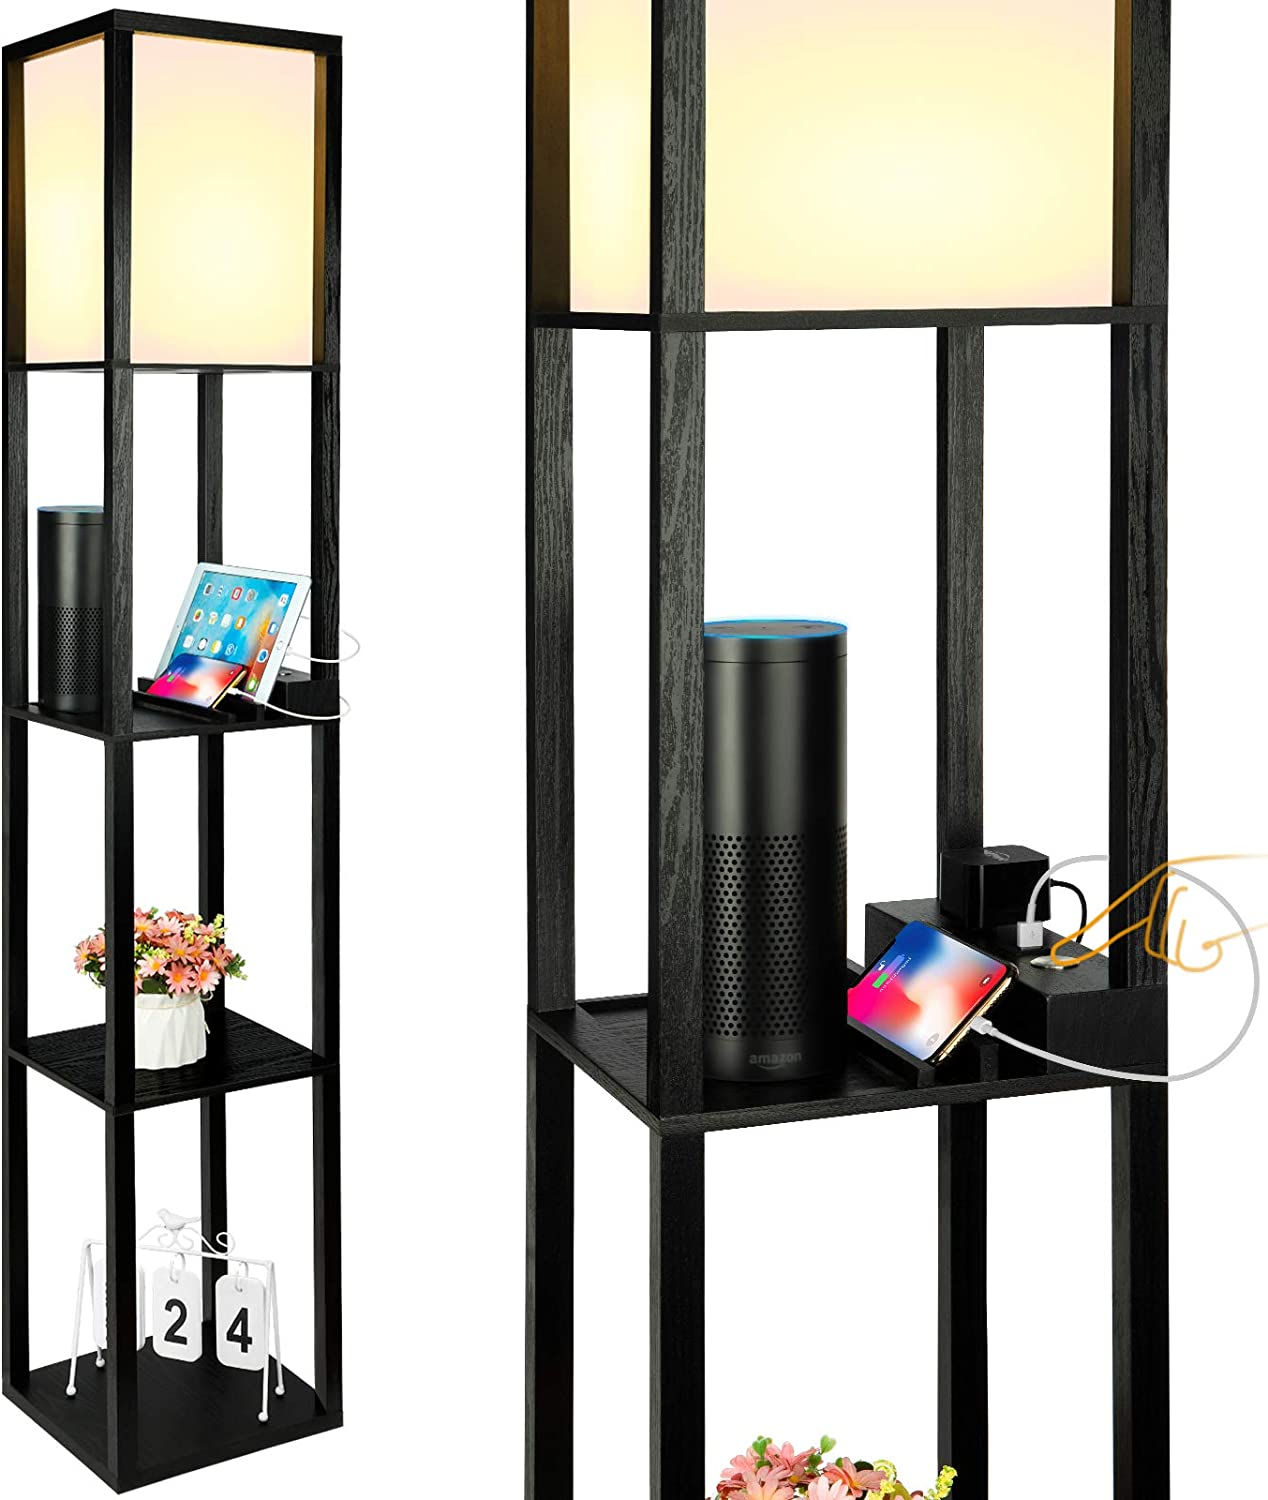 3-Way Dimmable Shelf Floor Lamp with USB Charging Ports and Power Outlet, Shelves & Storage Modern Standing Light for Bedroom, Living Room, Corner Tower Nightstand Table Floor Lamps-Black